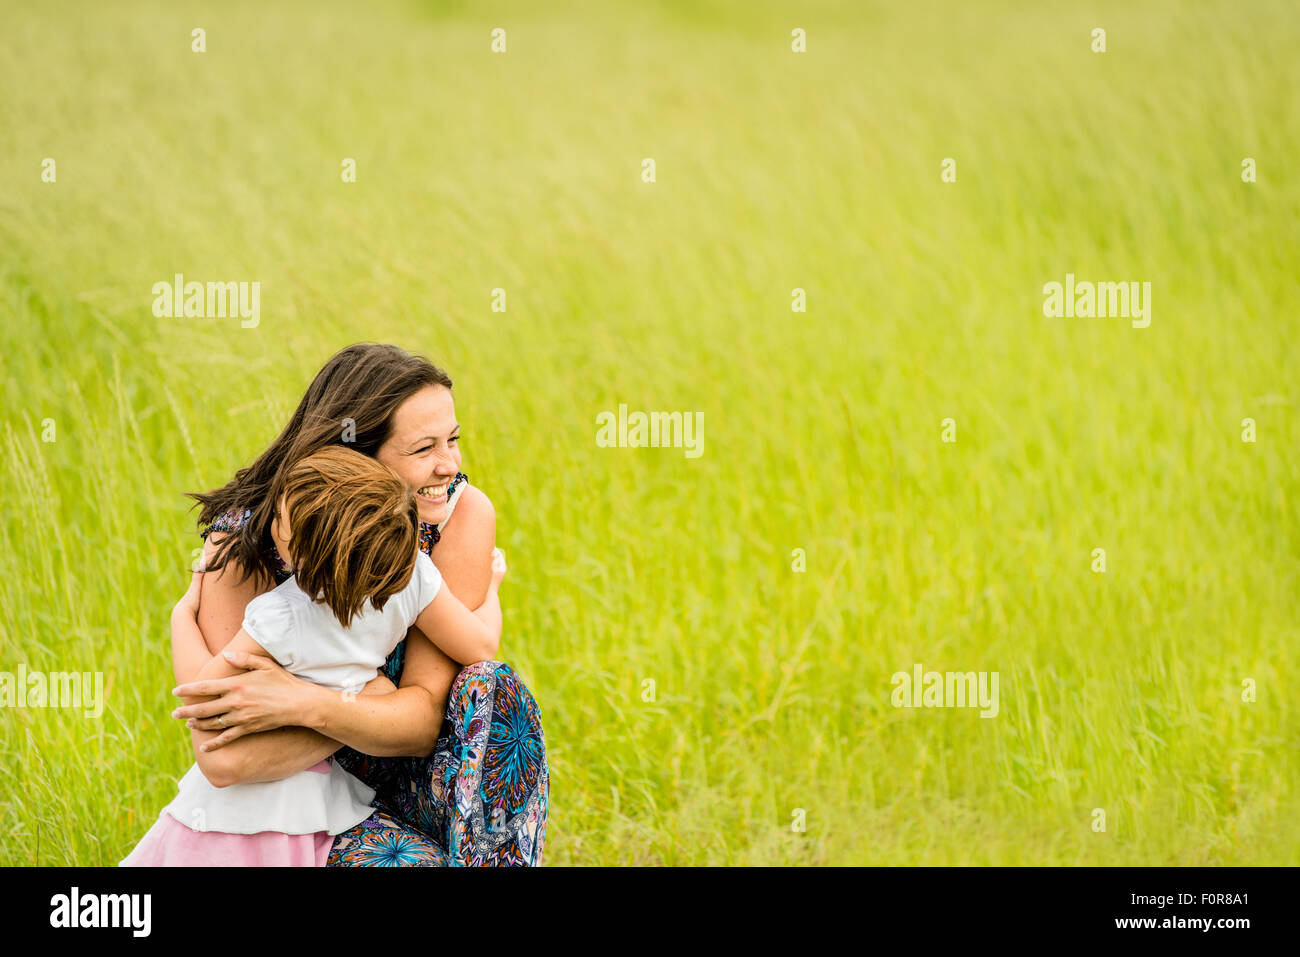 Mother and child are hugging and embracing outdoor in nature - Stock Image